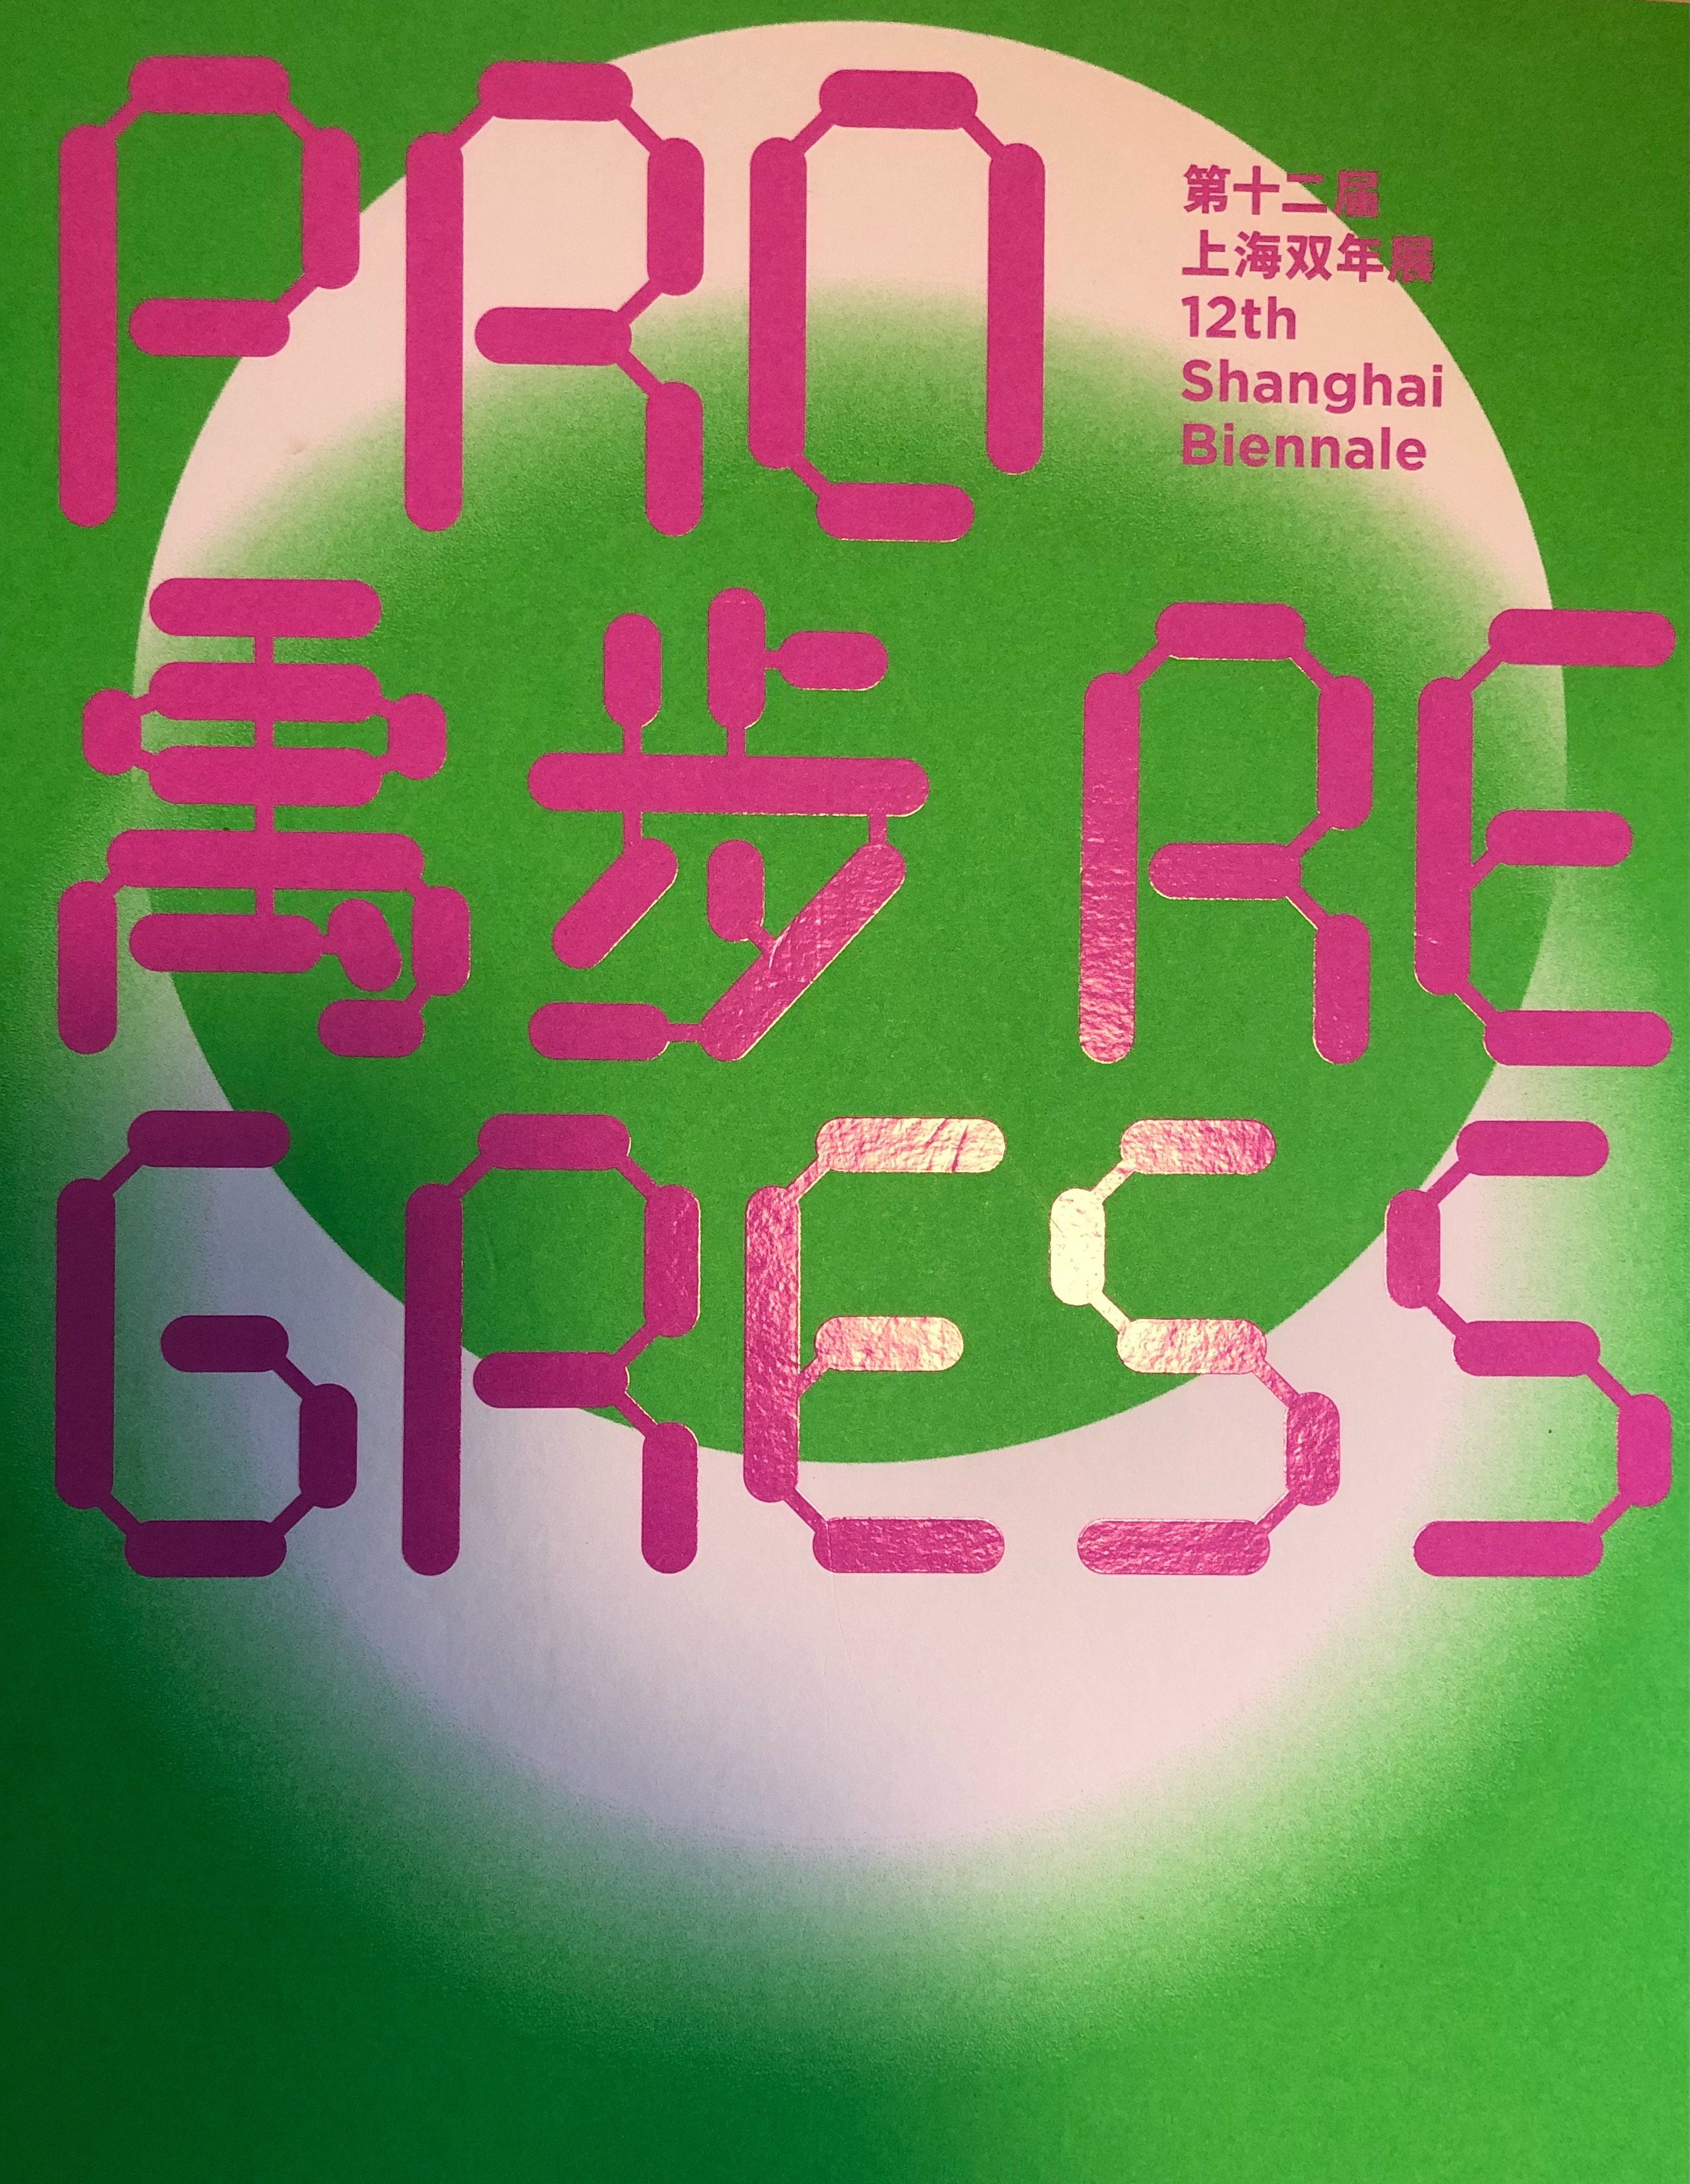 """The 12th Shanghai Biennale, held from 2018 to 2019, was noted for its ingenious and thought-provoking thematic title in both English and Chinese. The English title was """"Proregress,"""" a word coined by the late American poet E. E. Cummings, which condensed """"progress"""" and """"regress."""" """"Proregress"""" reflected the profound contradictions that plague both the imperative for transformation and the barriers of stagnation in the contemporary world. The Chinese thematic title of the Biennale employed the rarely used term """"yubu,"""" which refers to the mystical Daoist ritual dance of ancient China in which the dancer appears to be moving forward while simultaneously going backward, or vice versa."""